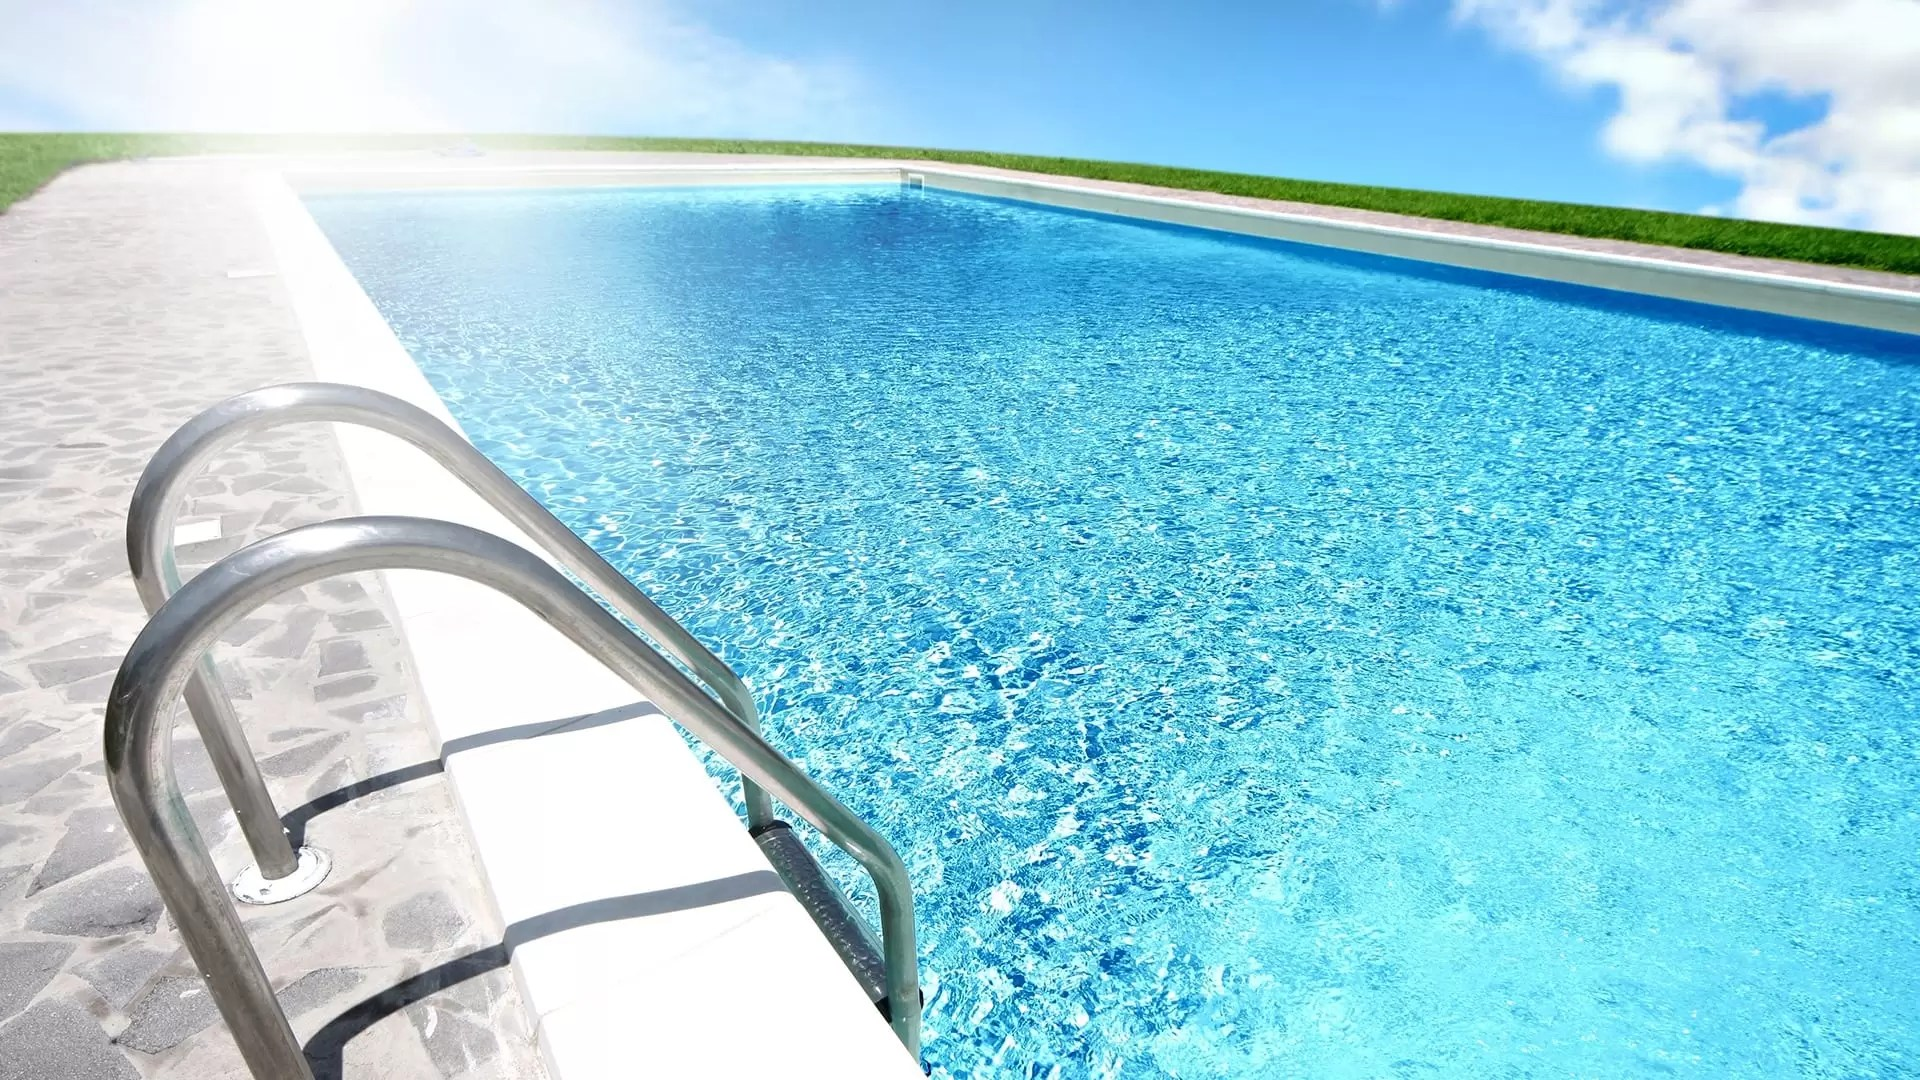 Pool Automation Purpose And Benefits